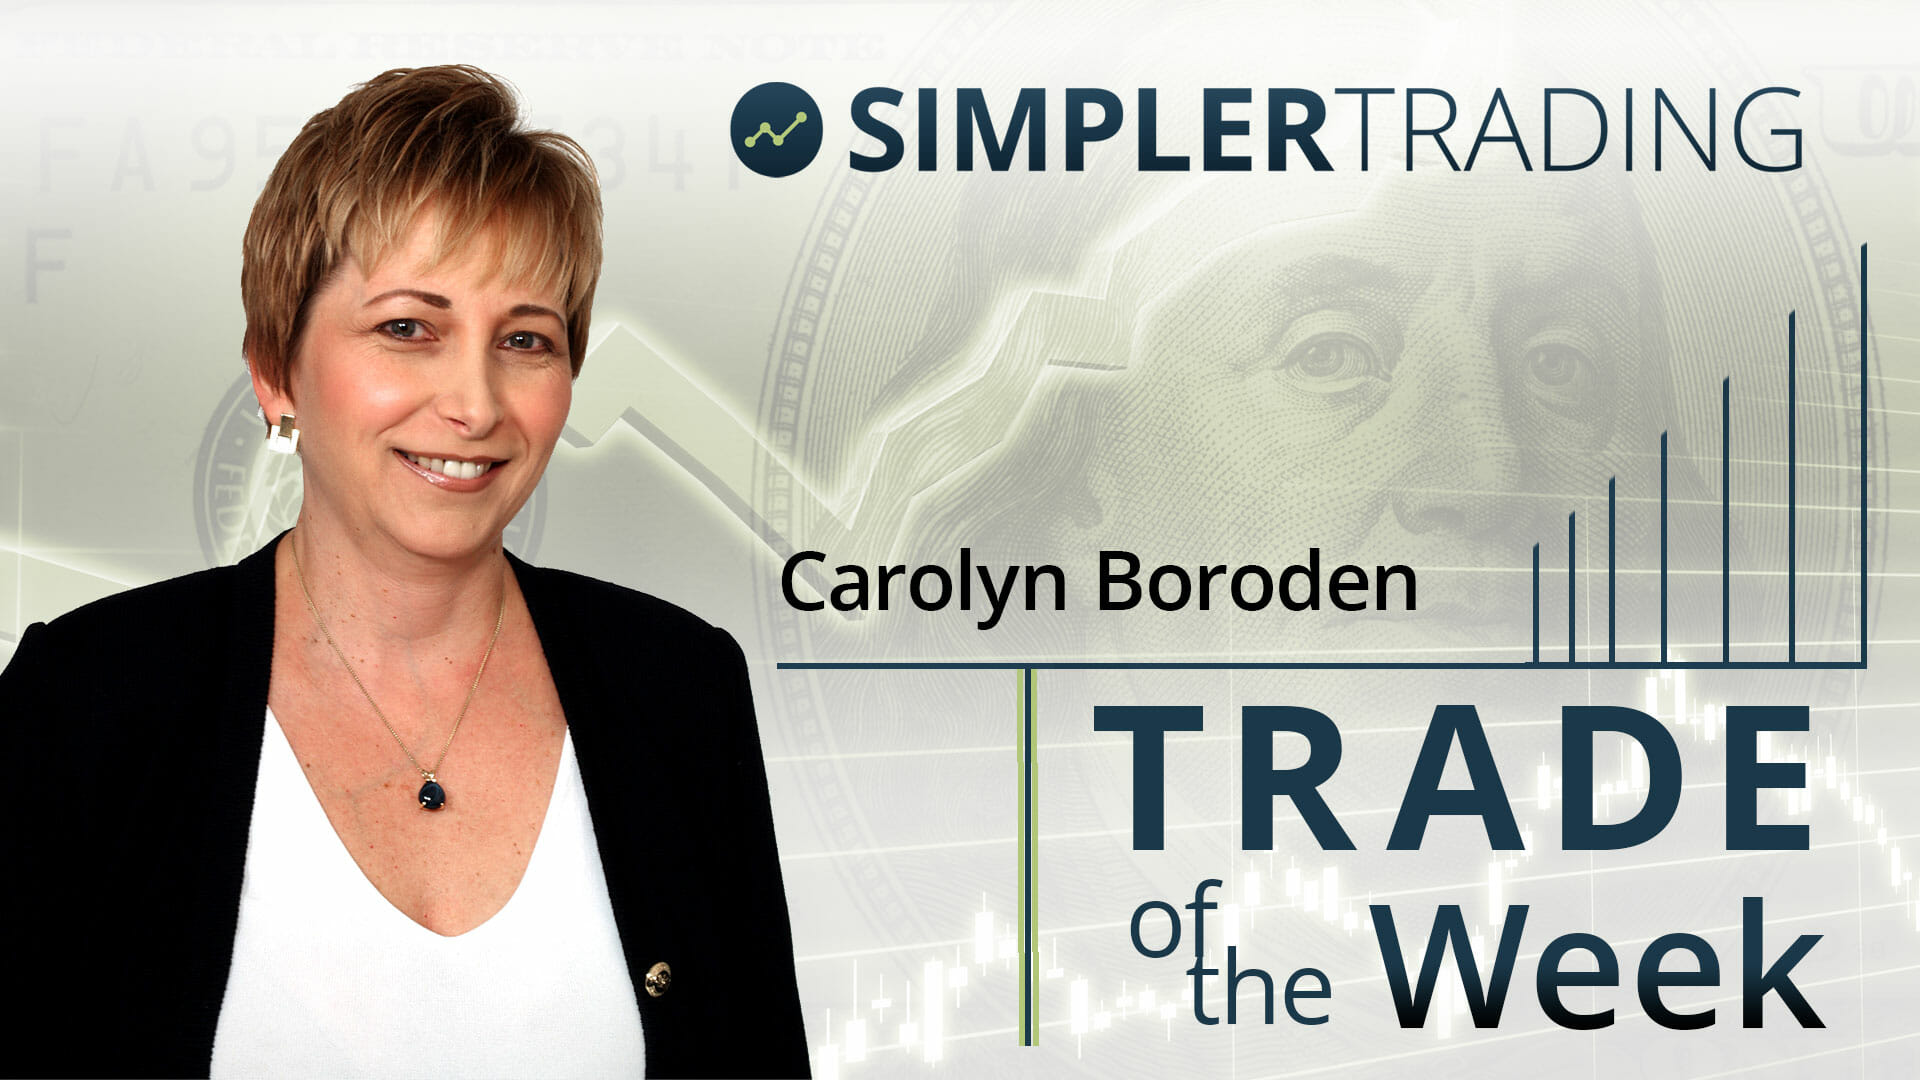 Trade of the Week Carolyn Boroden